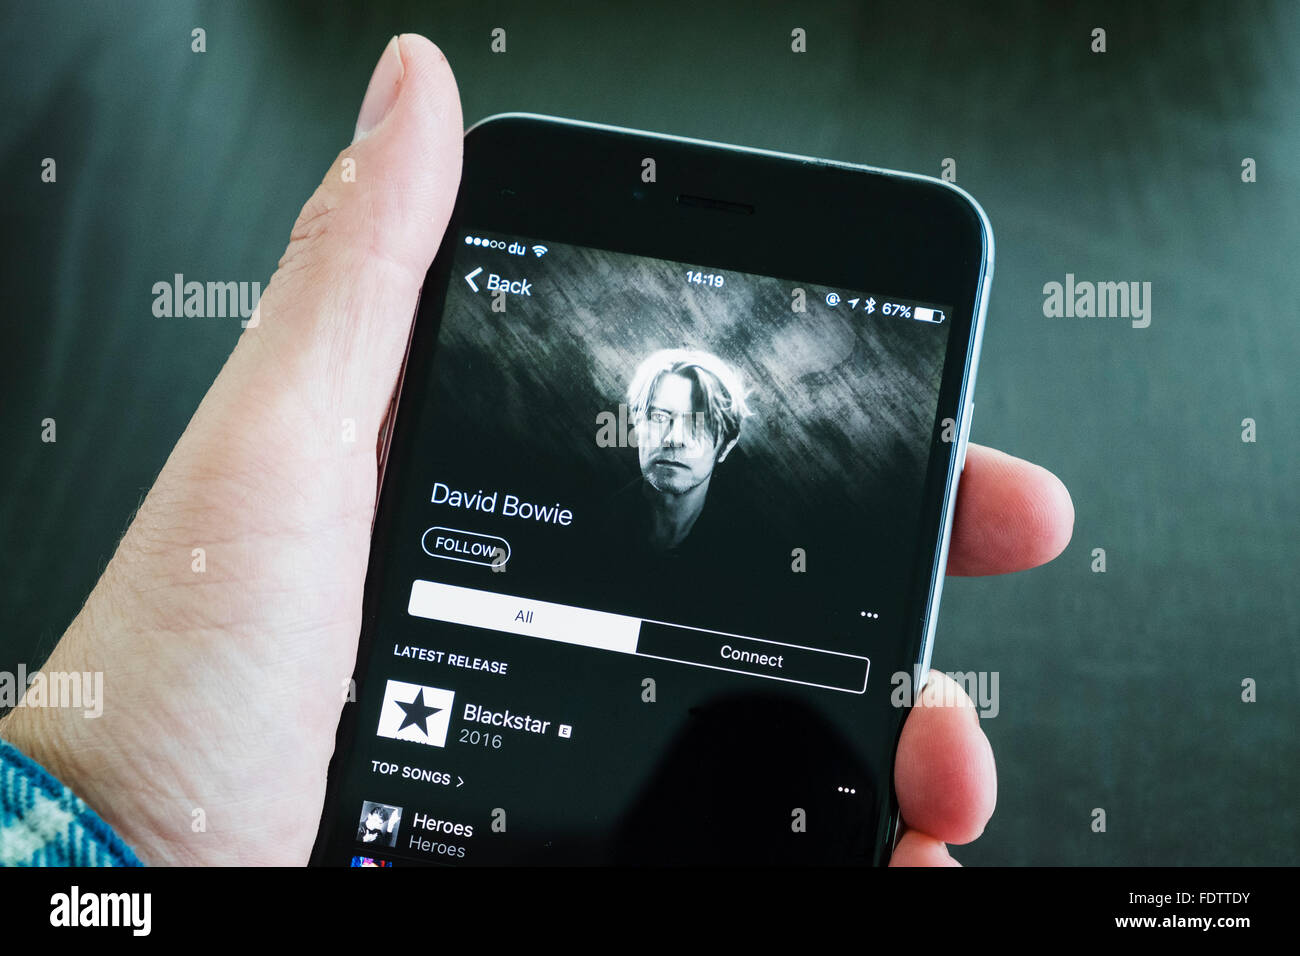 David Bowie album Backstair on Apple Music streaming service on an iPhone 6 plus smart phone - Stock Image